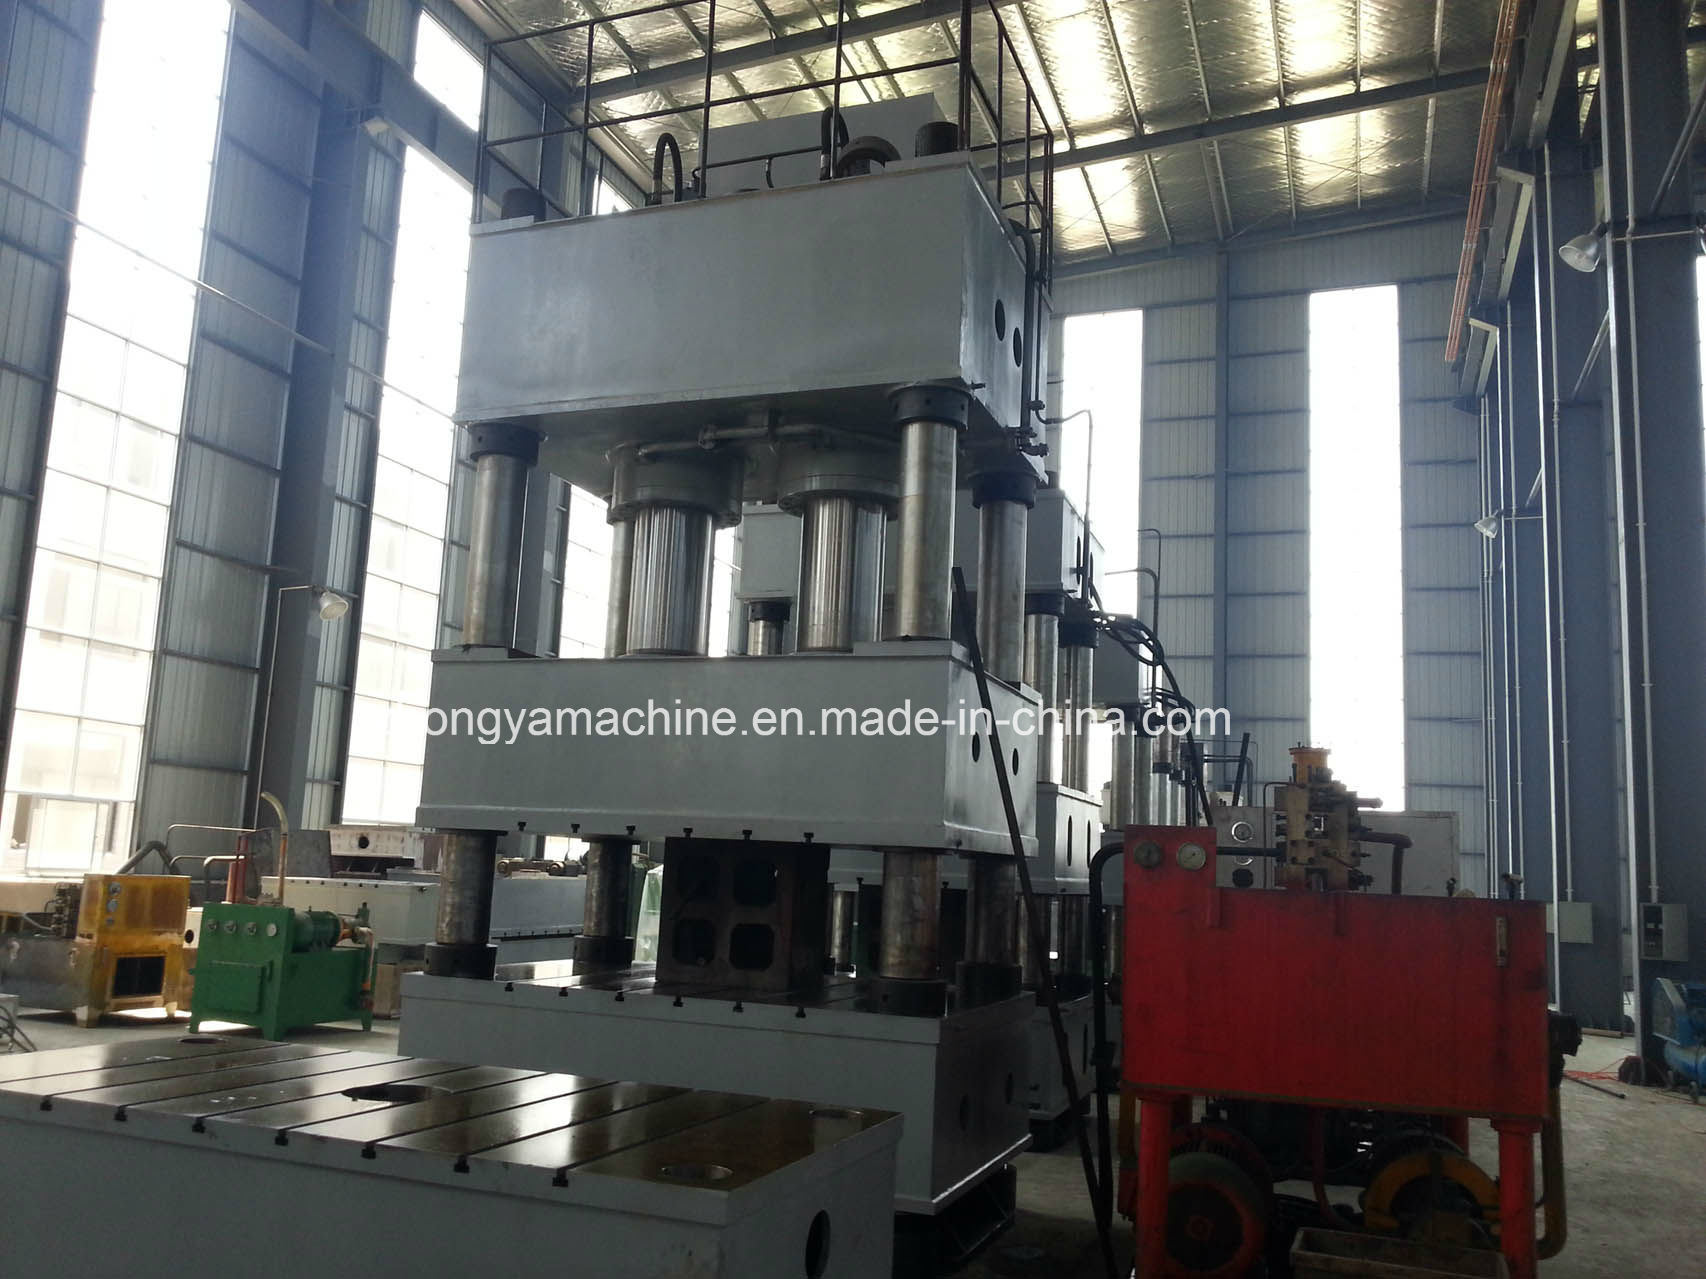 China Good Price Hydraulic Press Y32-1200ton